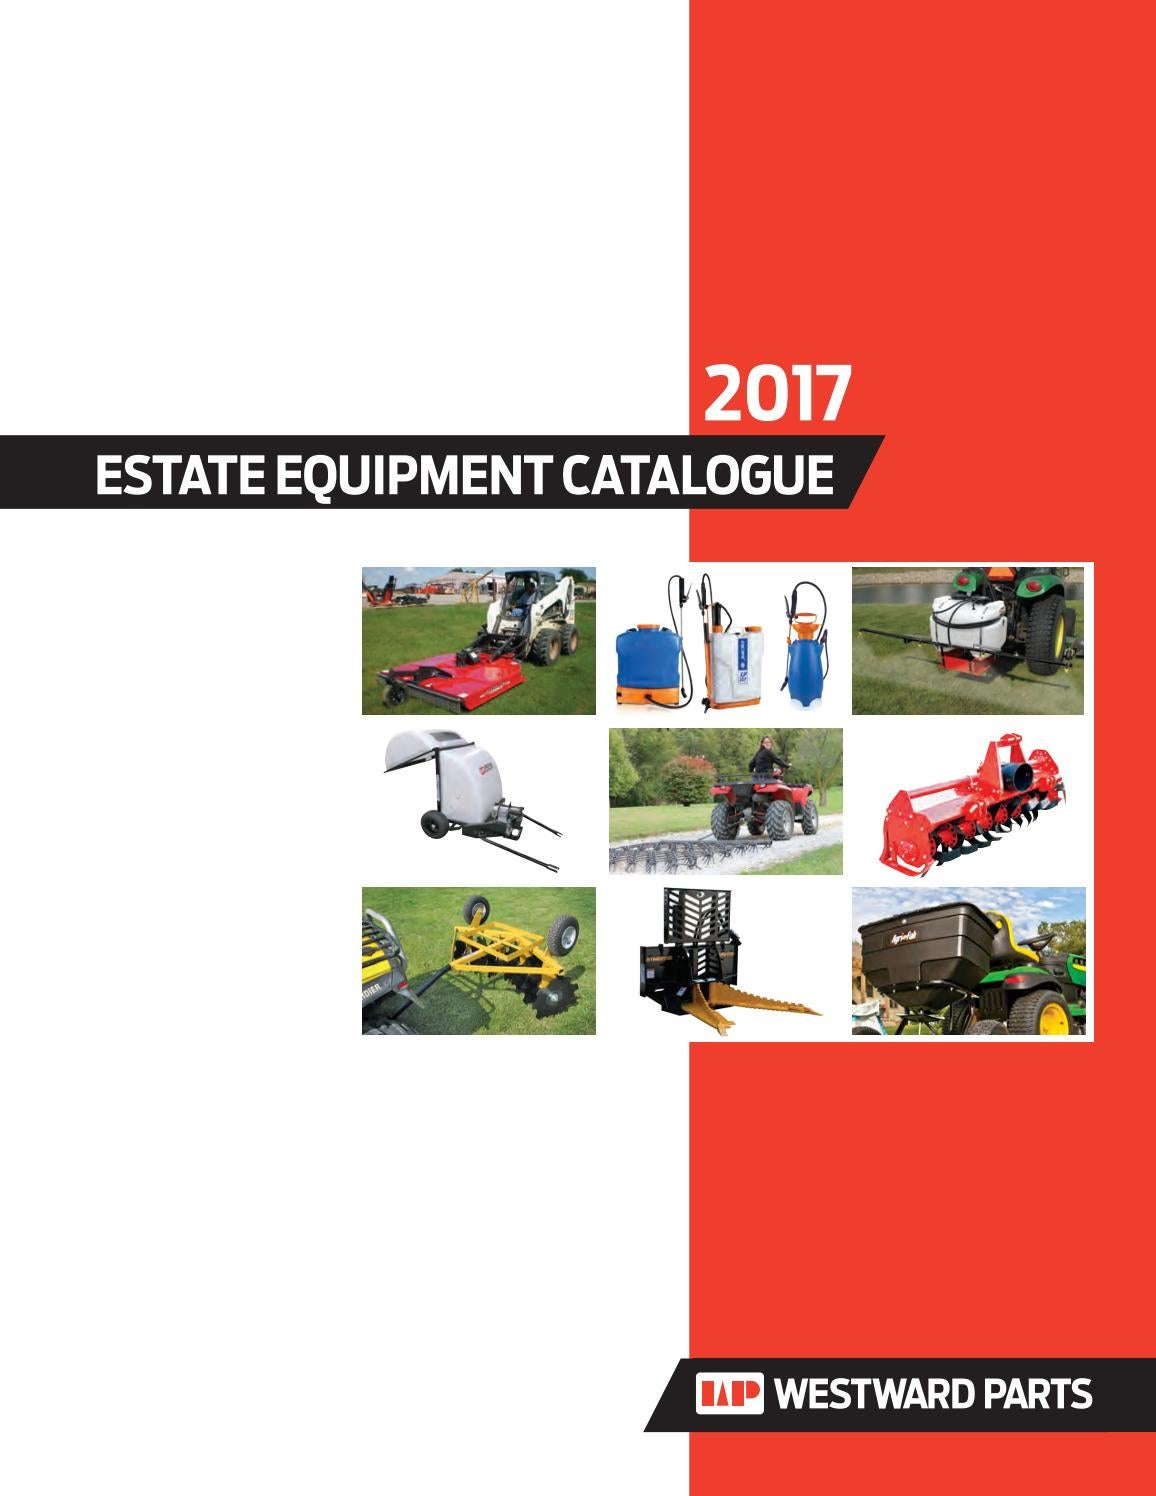 Estate Equipment Catalogue 2017 Westward Parts By